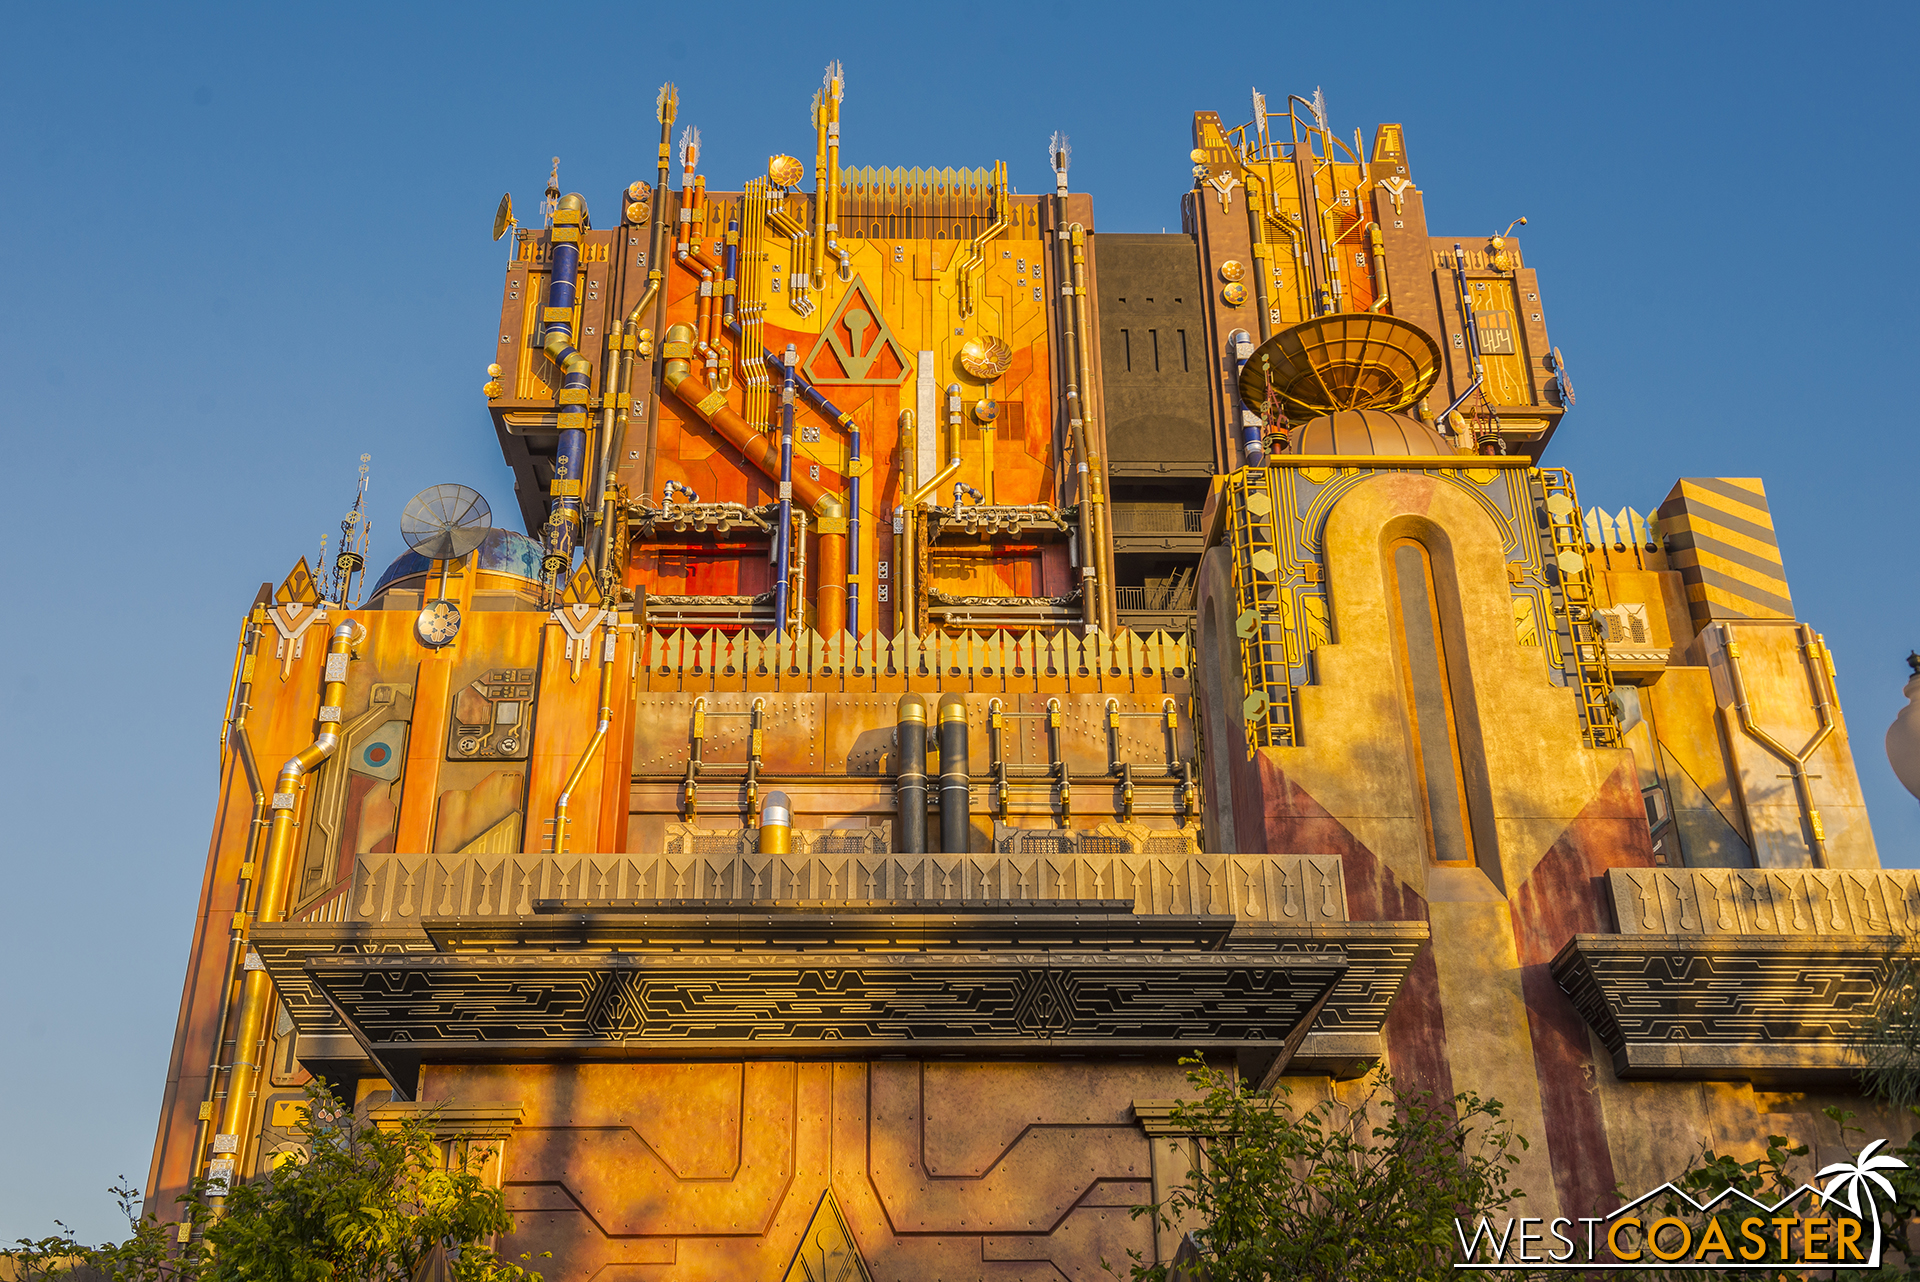 Regardless of how people might feel about the exterior, the actual ride experience should be pretty fantastic.